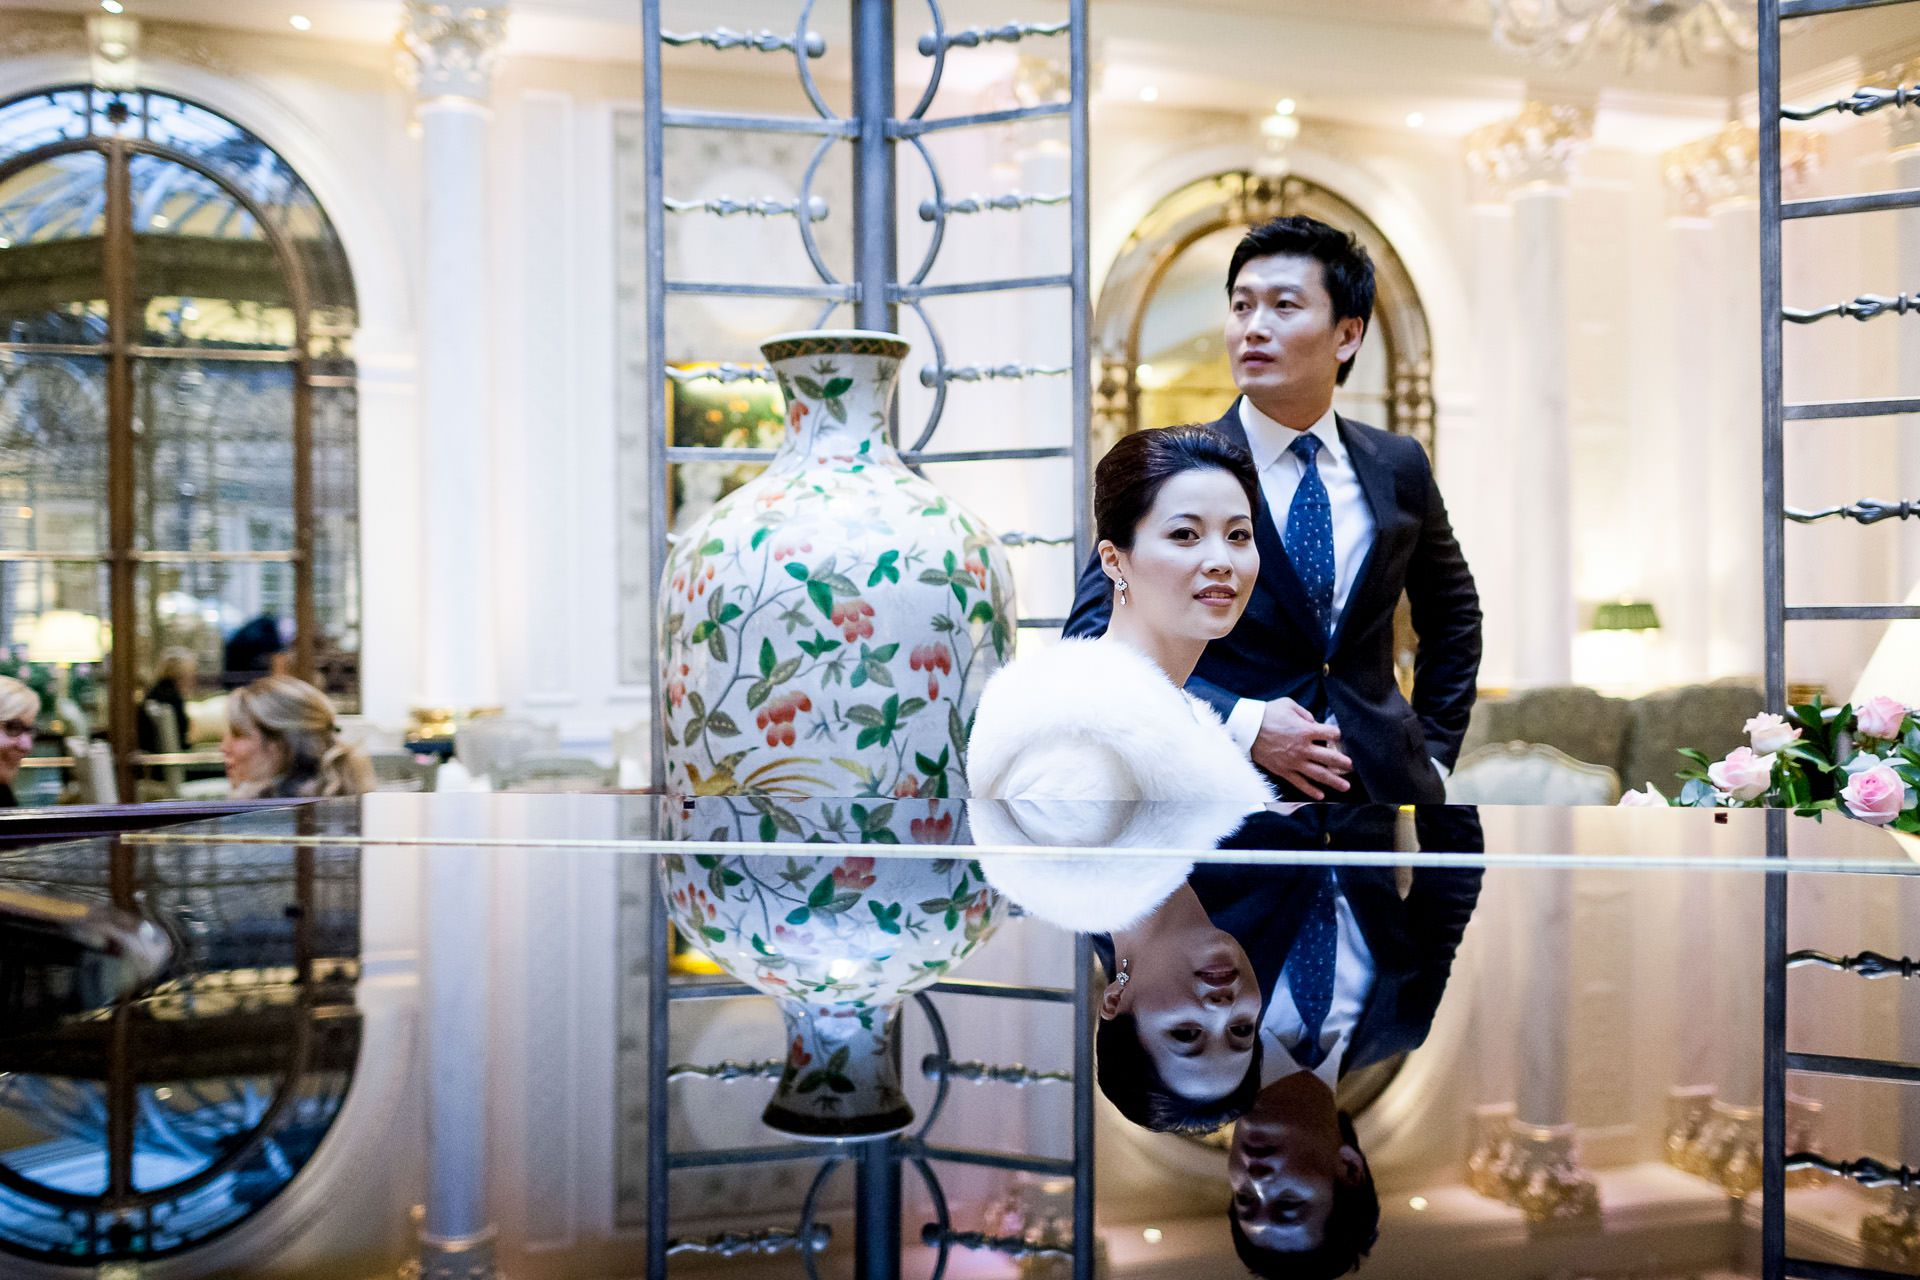 Chine Bride and Groom by the piano in the hotel with the reflection of the black surface of the piano